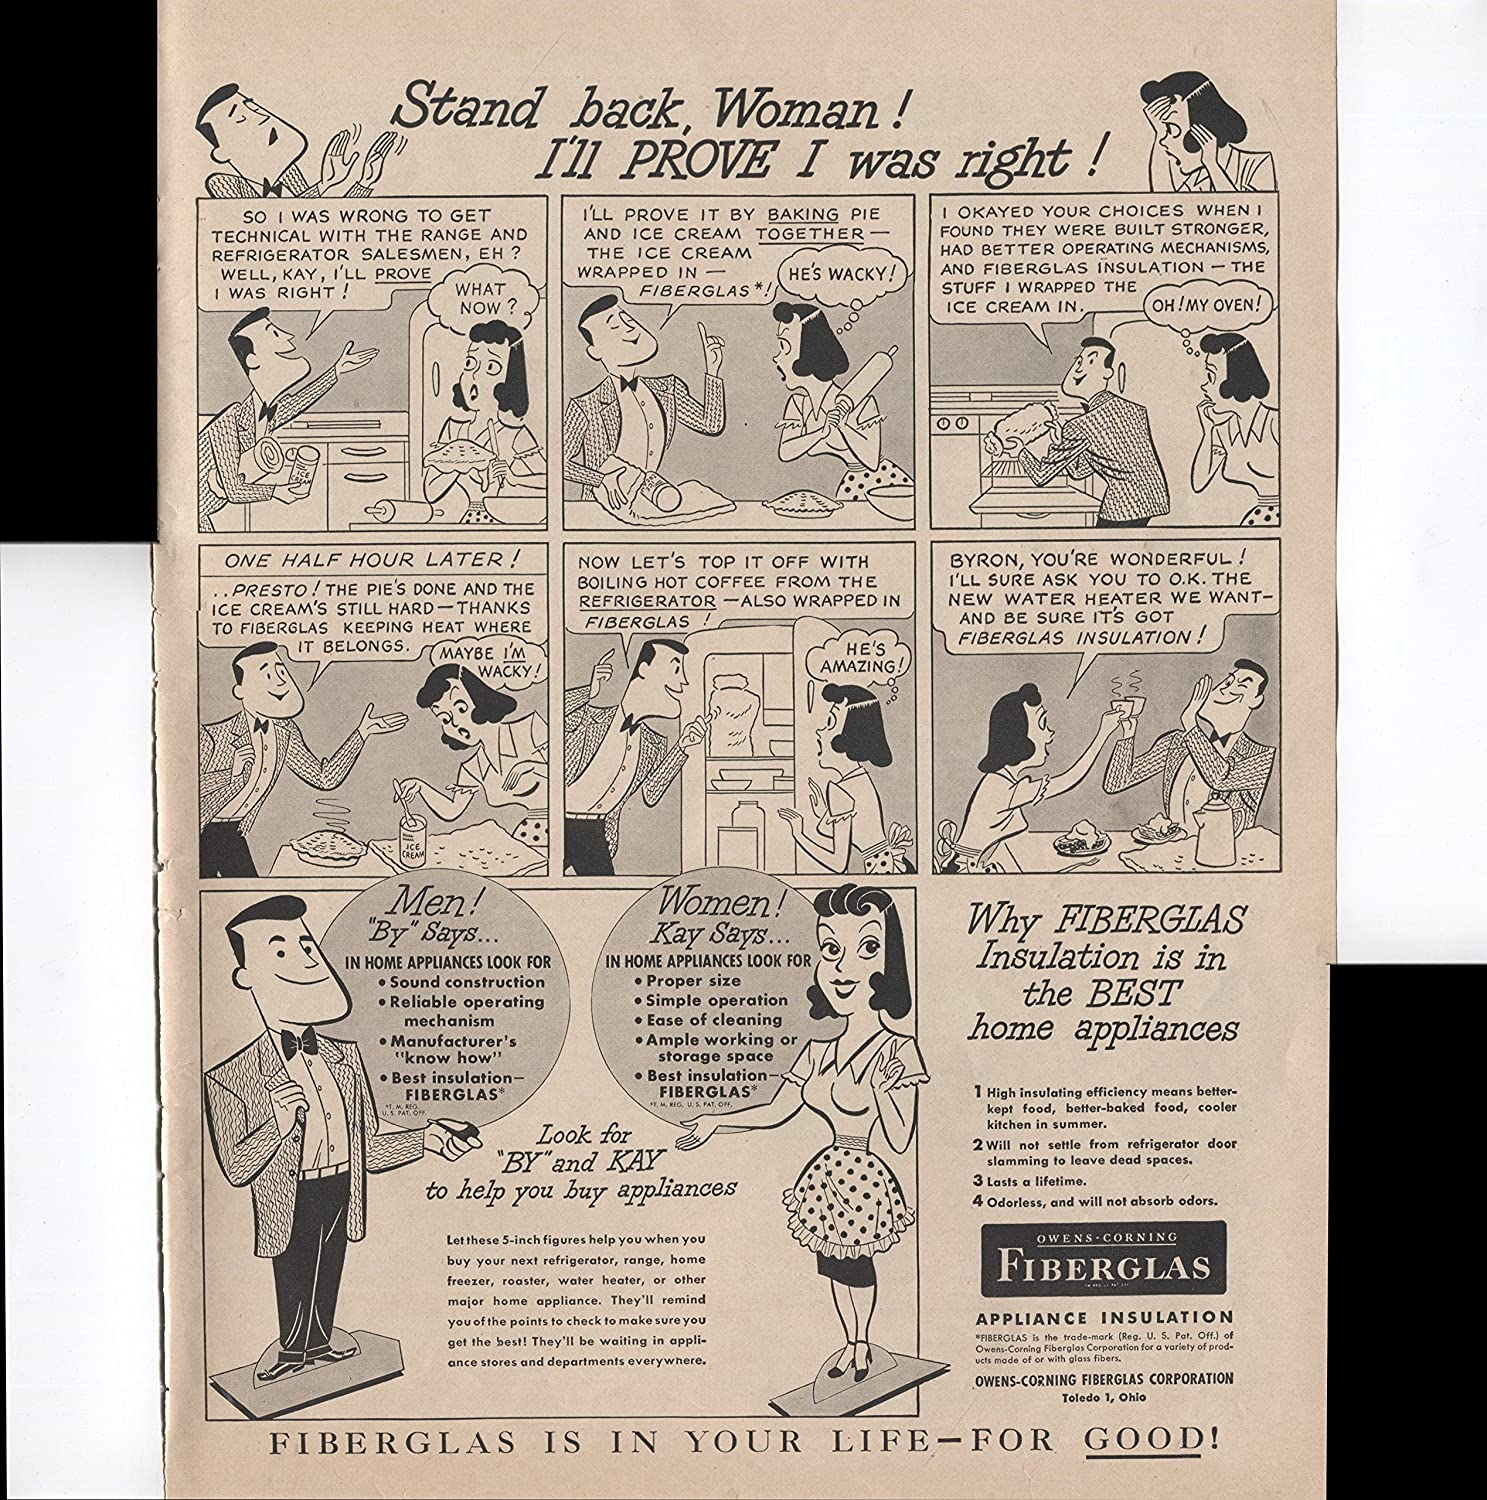 2e00b30fb8bd9 Amazon.com   Owens-Corning Fiberglas Appliance Insulation Included In The  Best Home Appliances 1950 Vintage Antique Advertisement   Everything Else